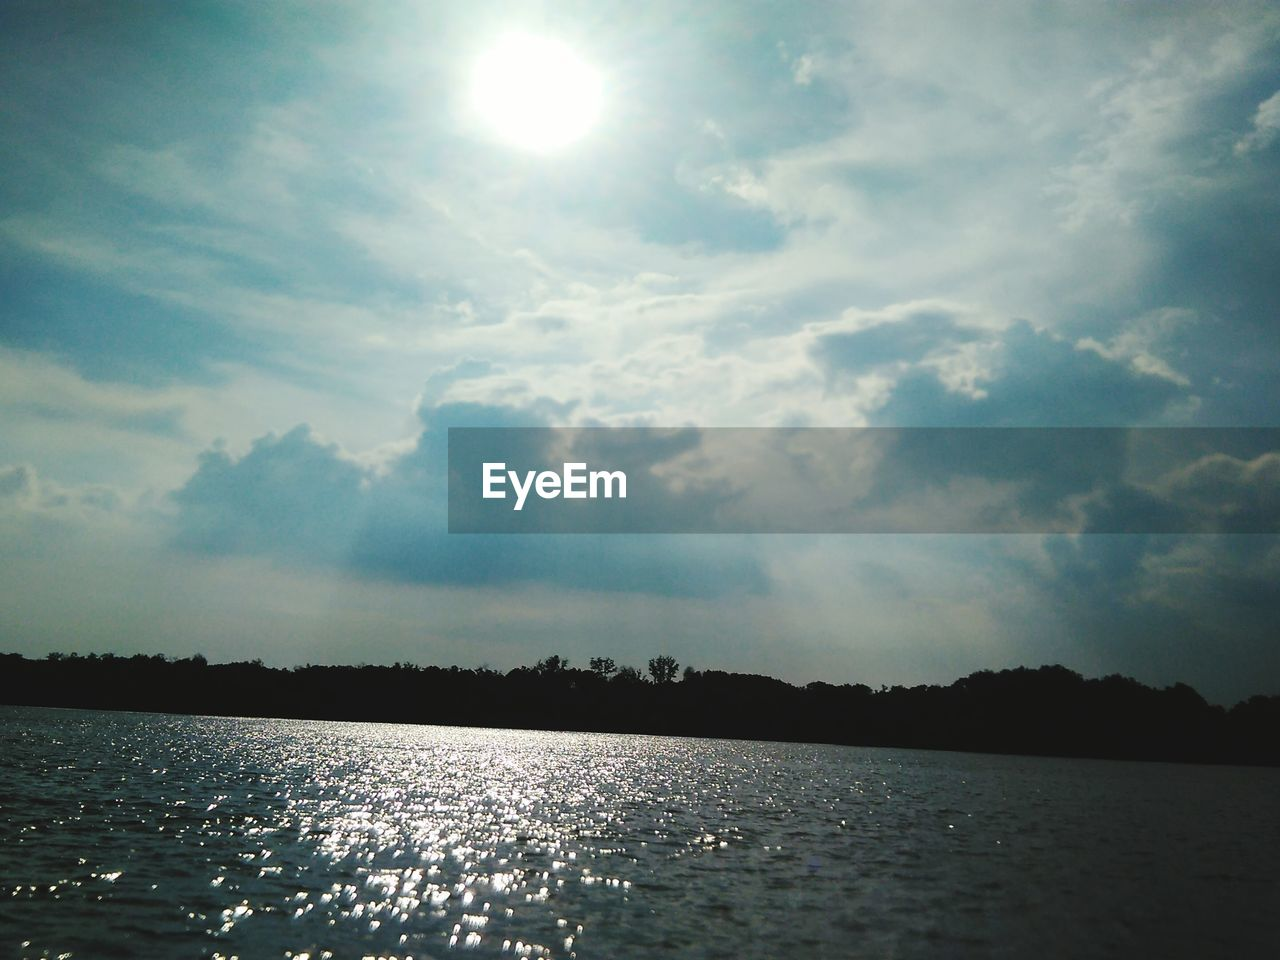 sky, water, nature, tranquility, scenics, beauty in nature, no people, tranquil scene, cloud - sky, outdoors, landscape, lake, scenery, day, tree